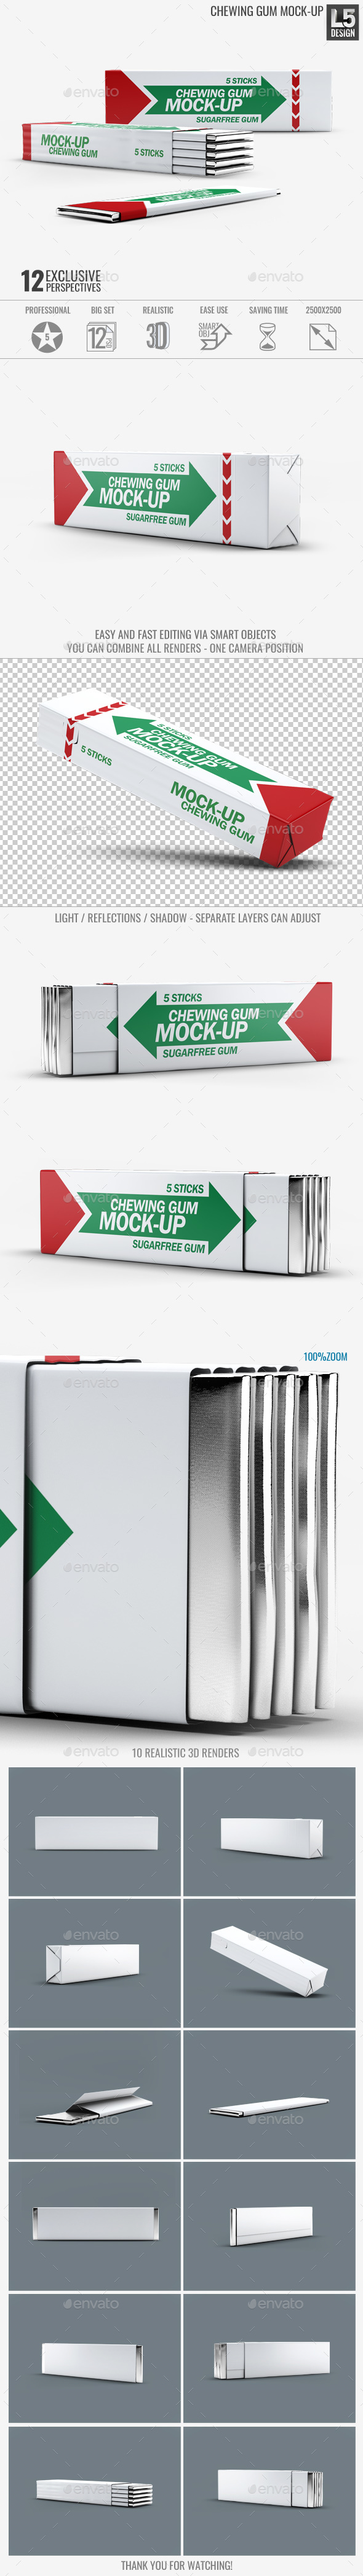 Chewing Gum Mock-Up v.2 - Food and Drink Packaging